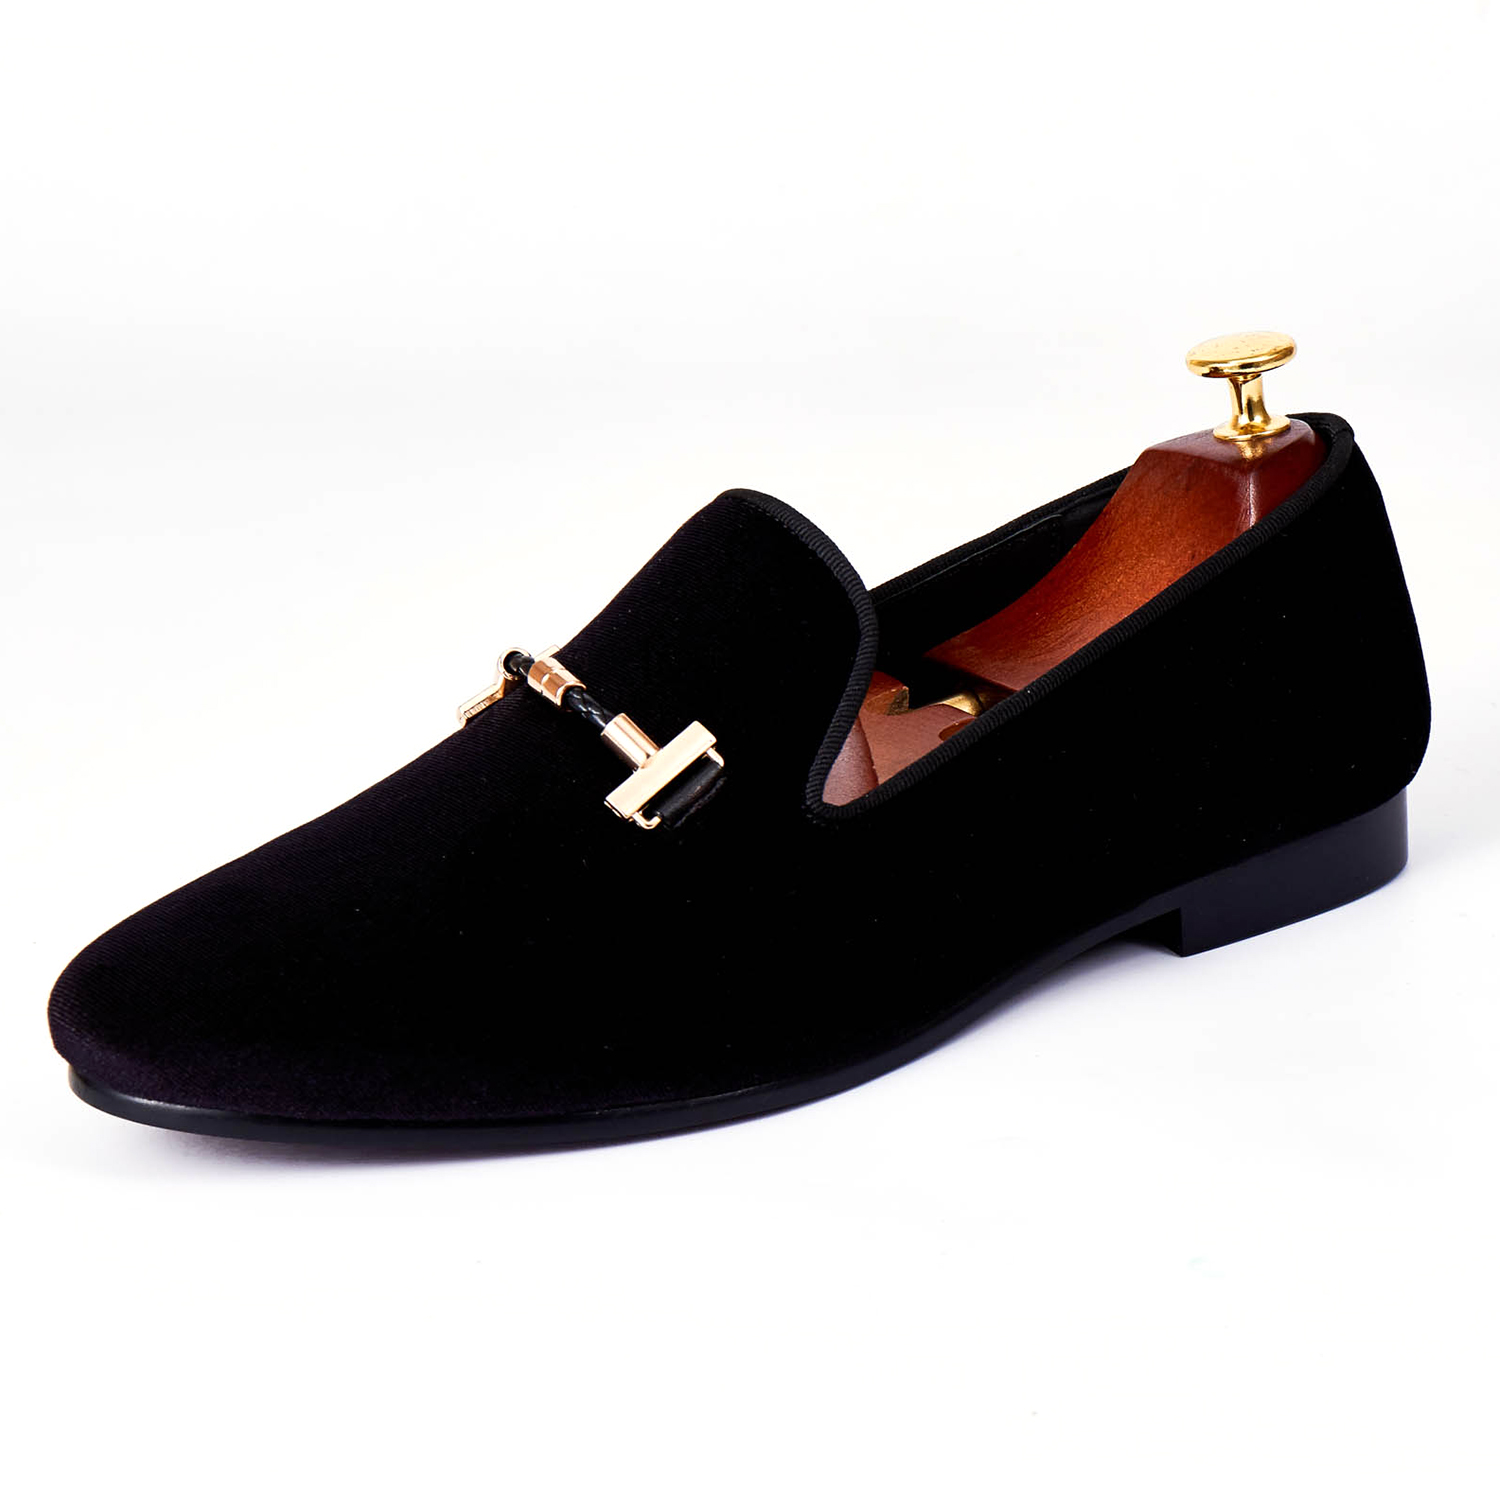 Harpelunde Custom Men Shoes Black Dress Shoes Buckle Strap Velvet Loafers Size 6-14 the punisher action figures 1 12 scale pvc action figure collectible model toy anime punisher superhero toys